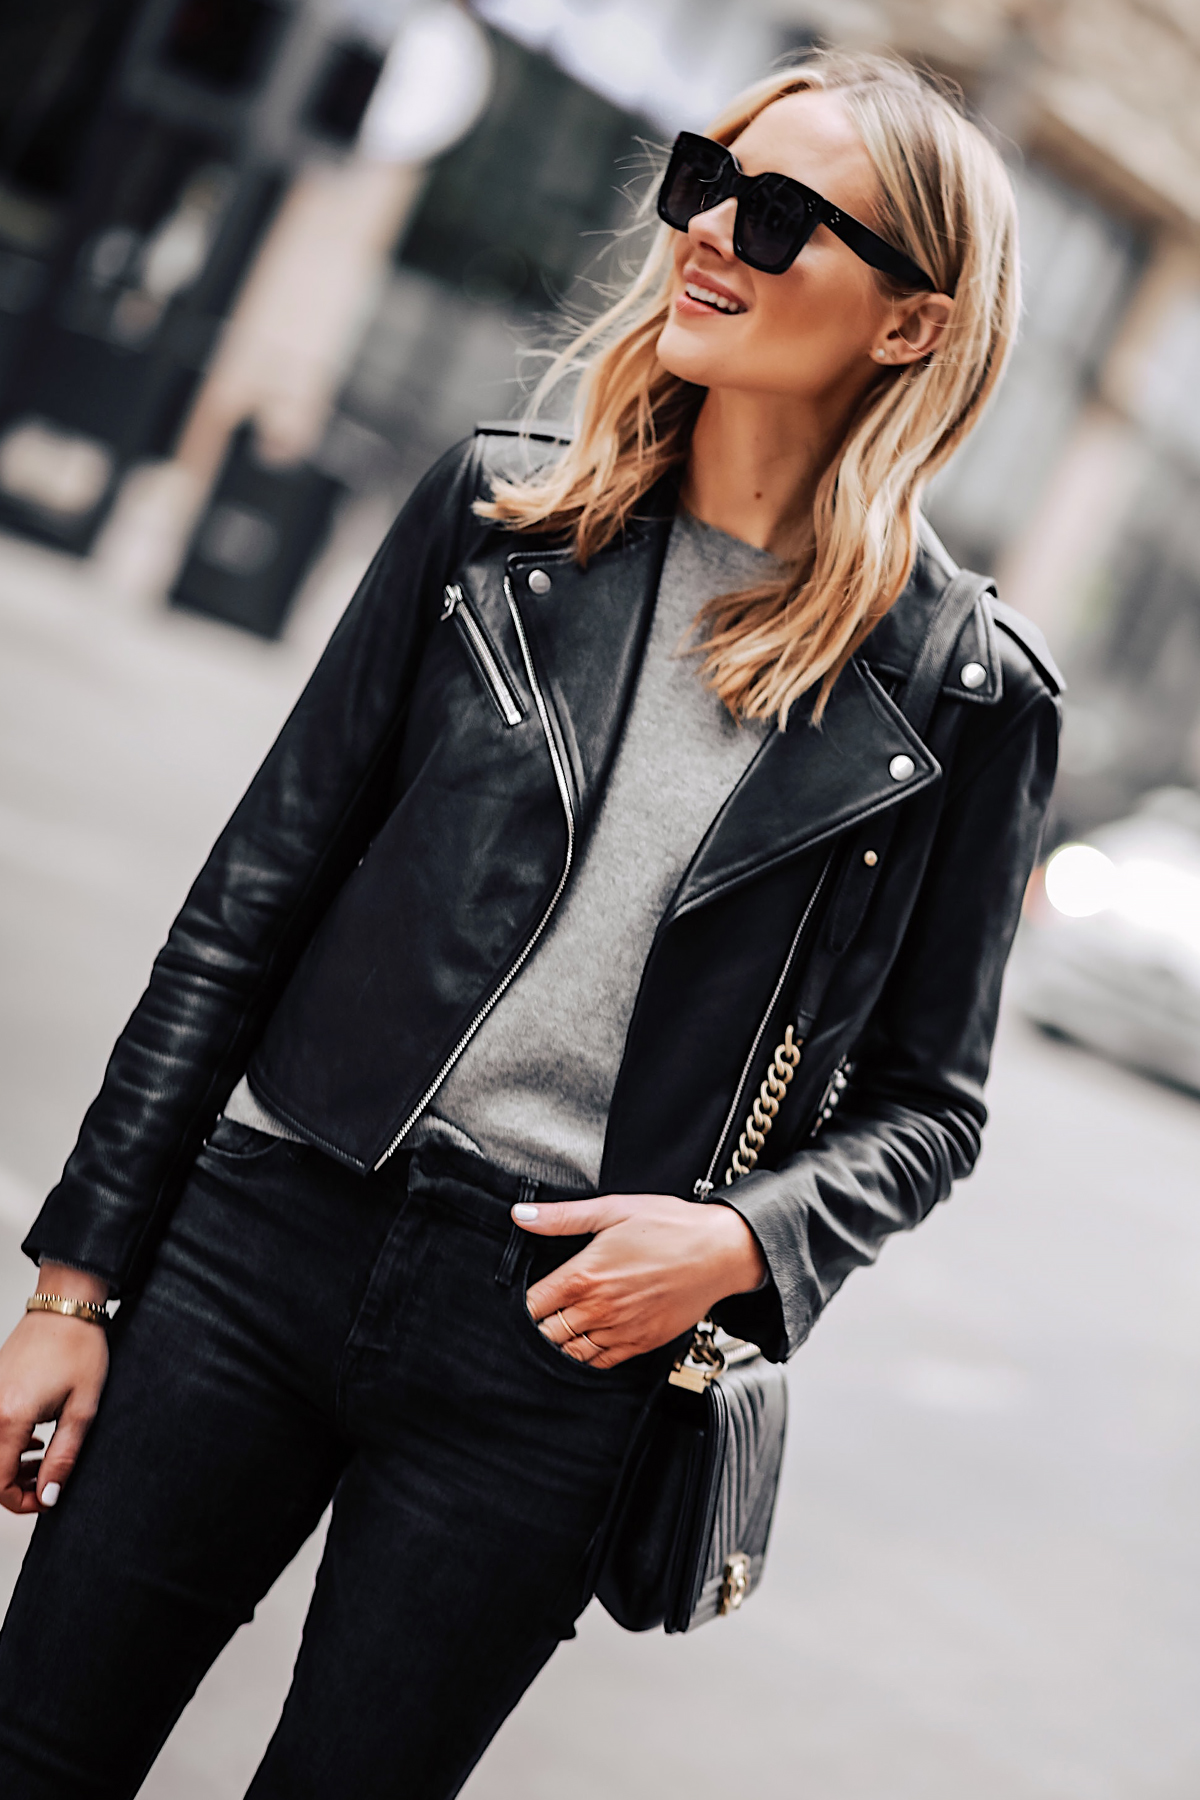 Blonde Woman Wearing Club Monaco Black Leather Jacket Grey Sweater Black Skinny Jeans Fashion Jackson San Diego Fashion Blogger Street Style